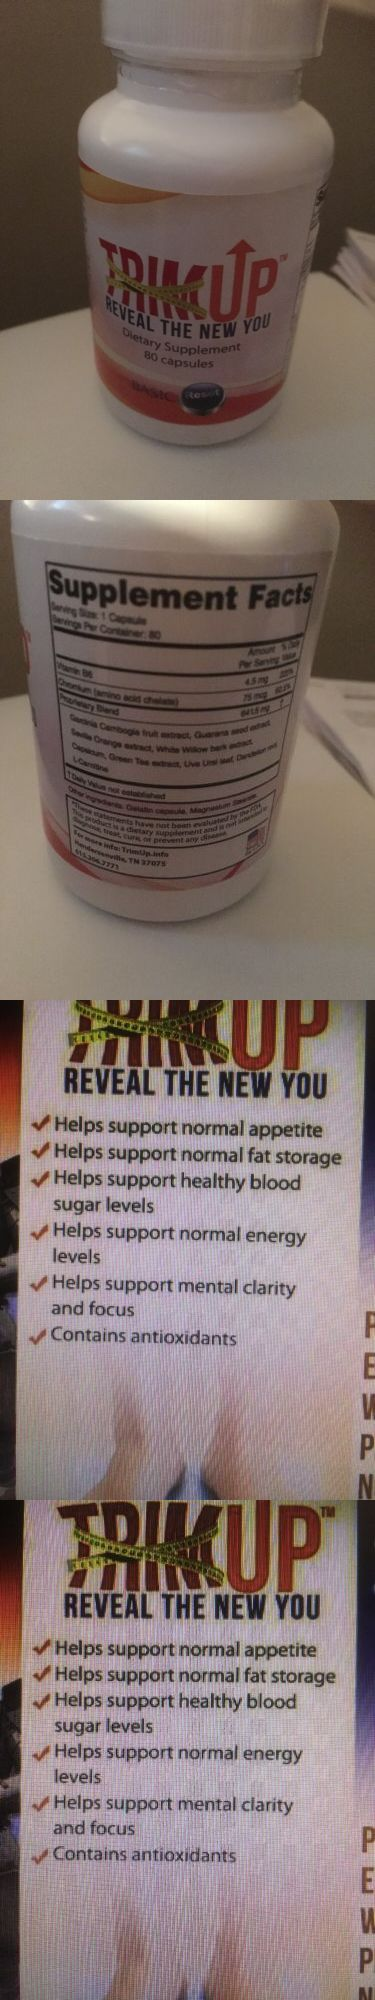 Appetite Control Suppressants: Dietary Supplement Trim Up Basic Reset 80 Capsules BUY IT NOW ONLY: $40.0